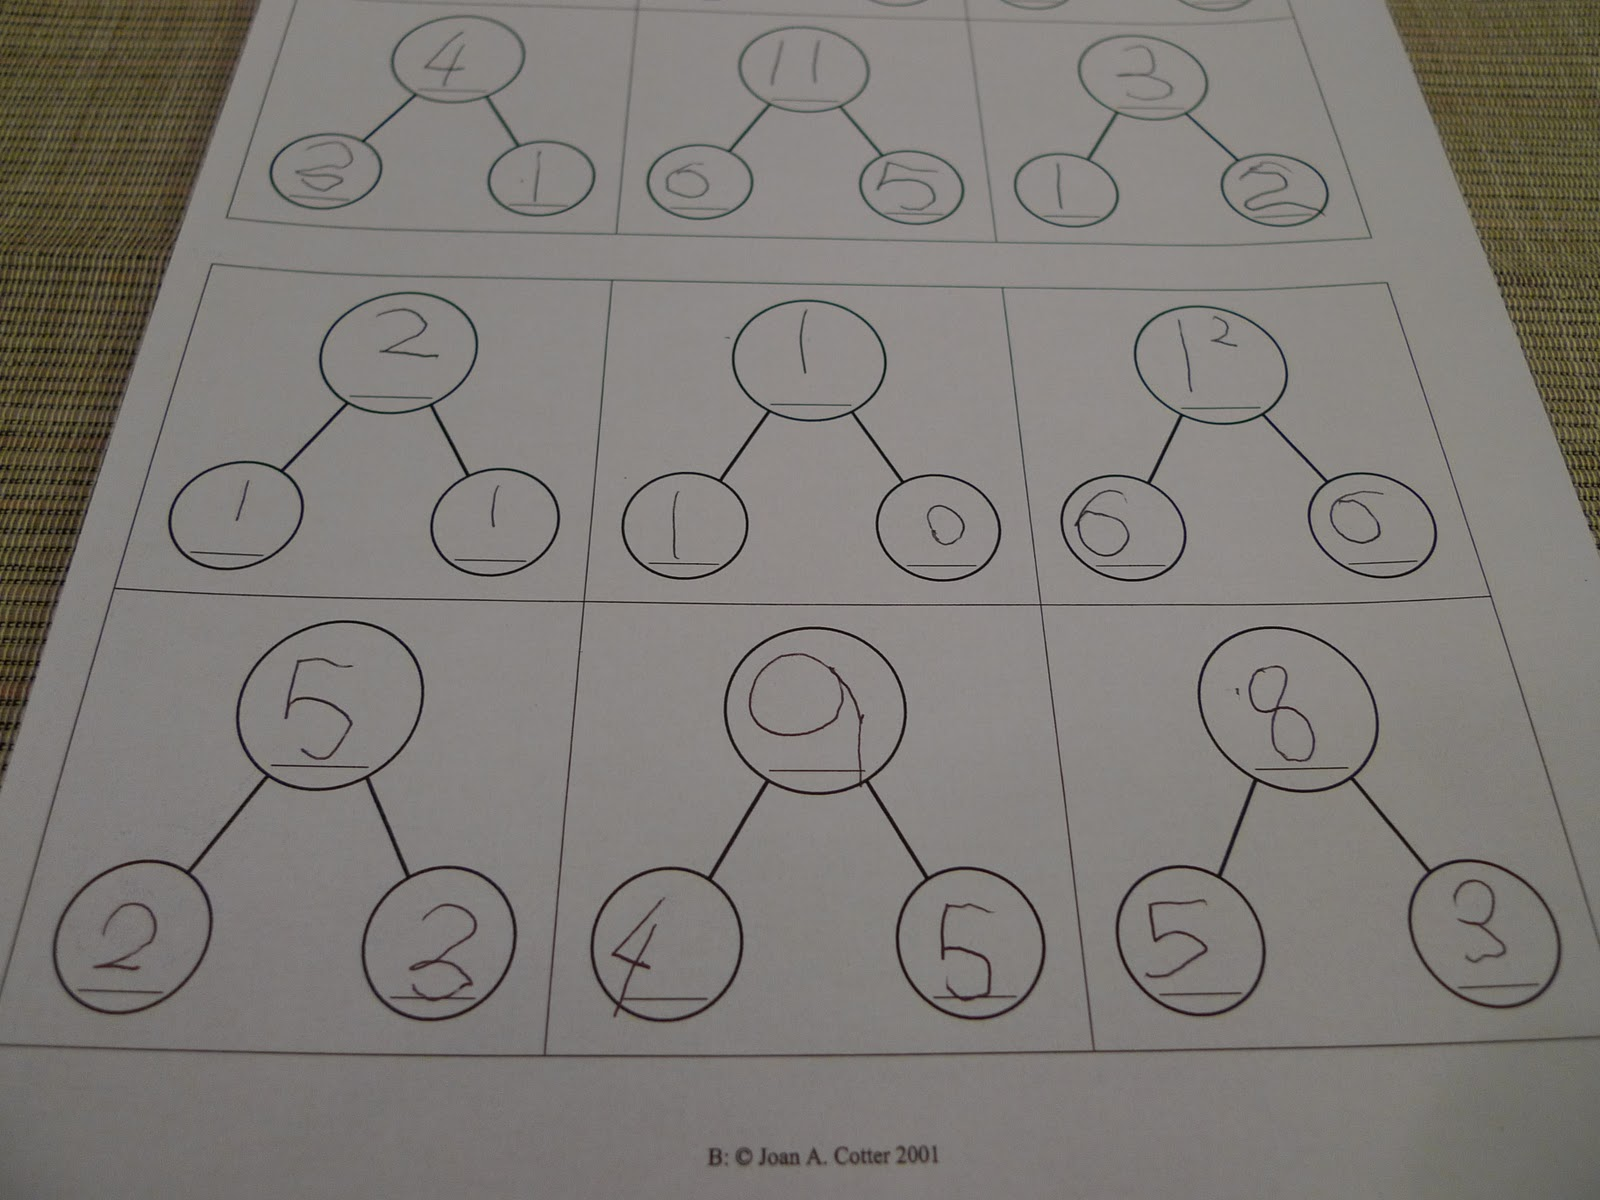 The Pig And Rabbit Consonant Blends And Part Whole Circles